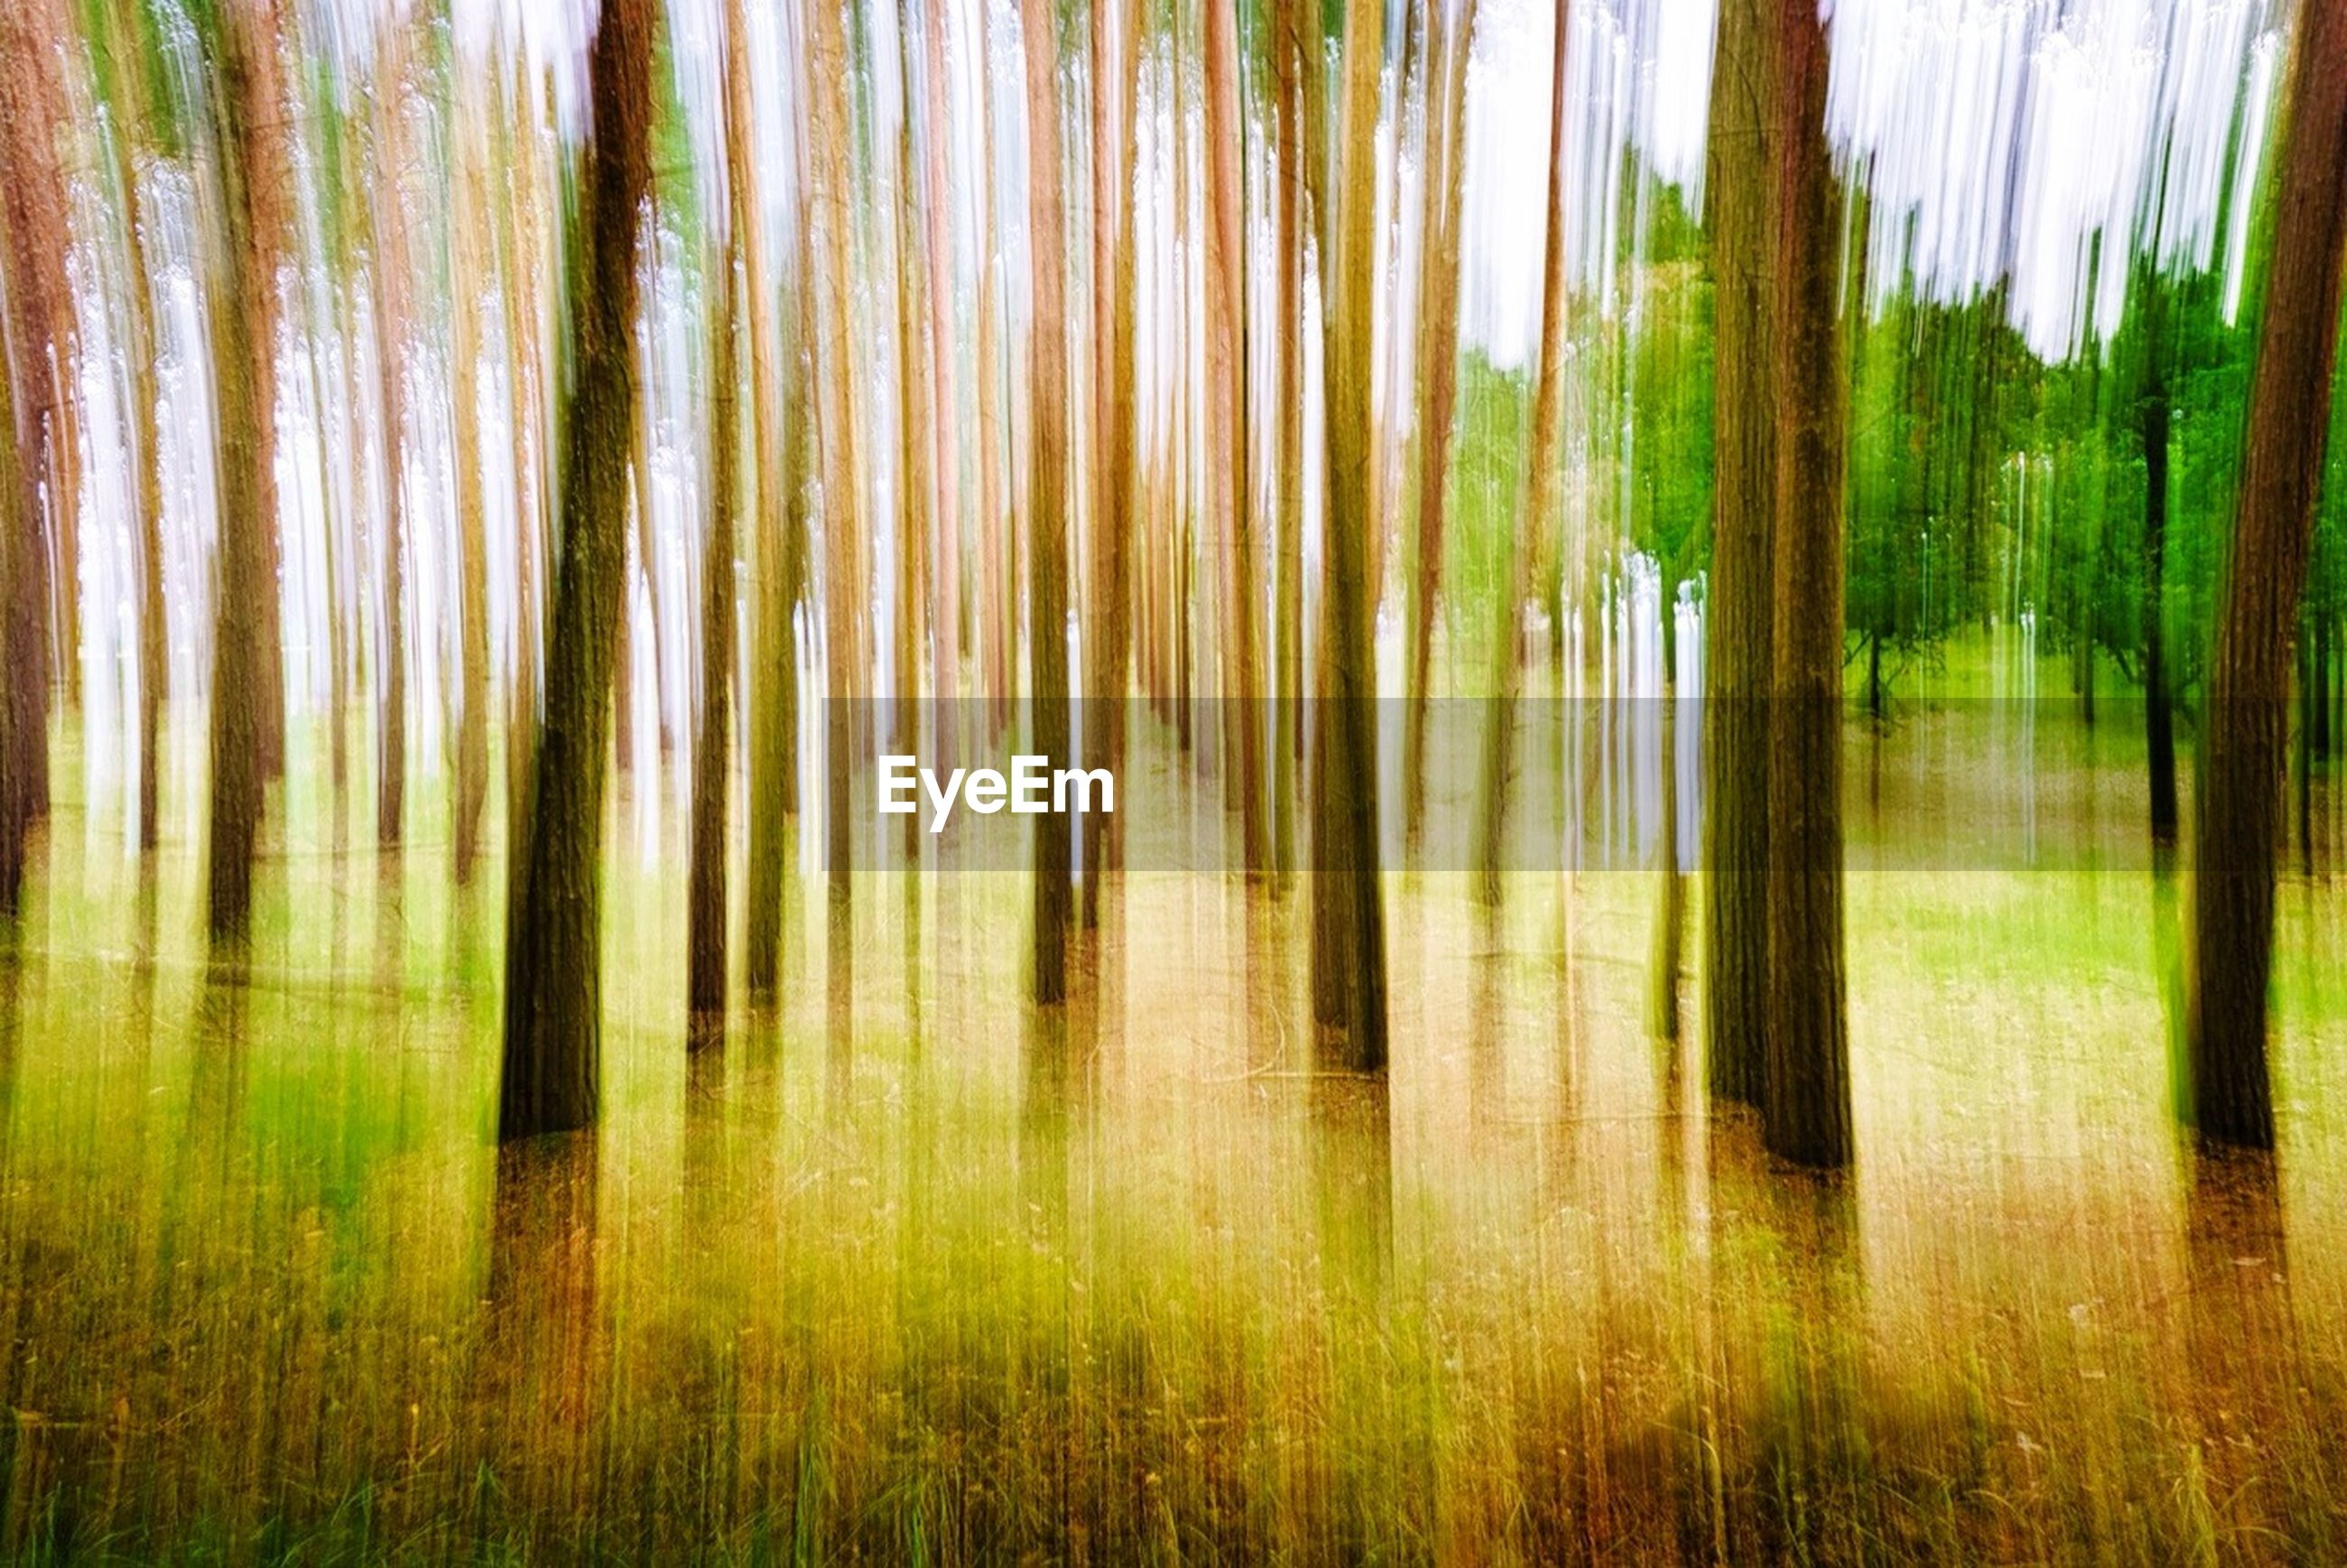 Blurred motion of trees on field